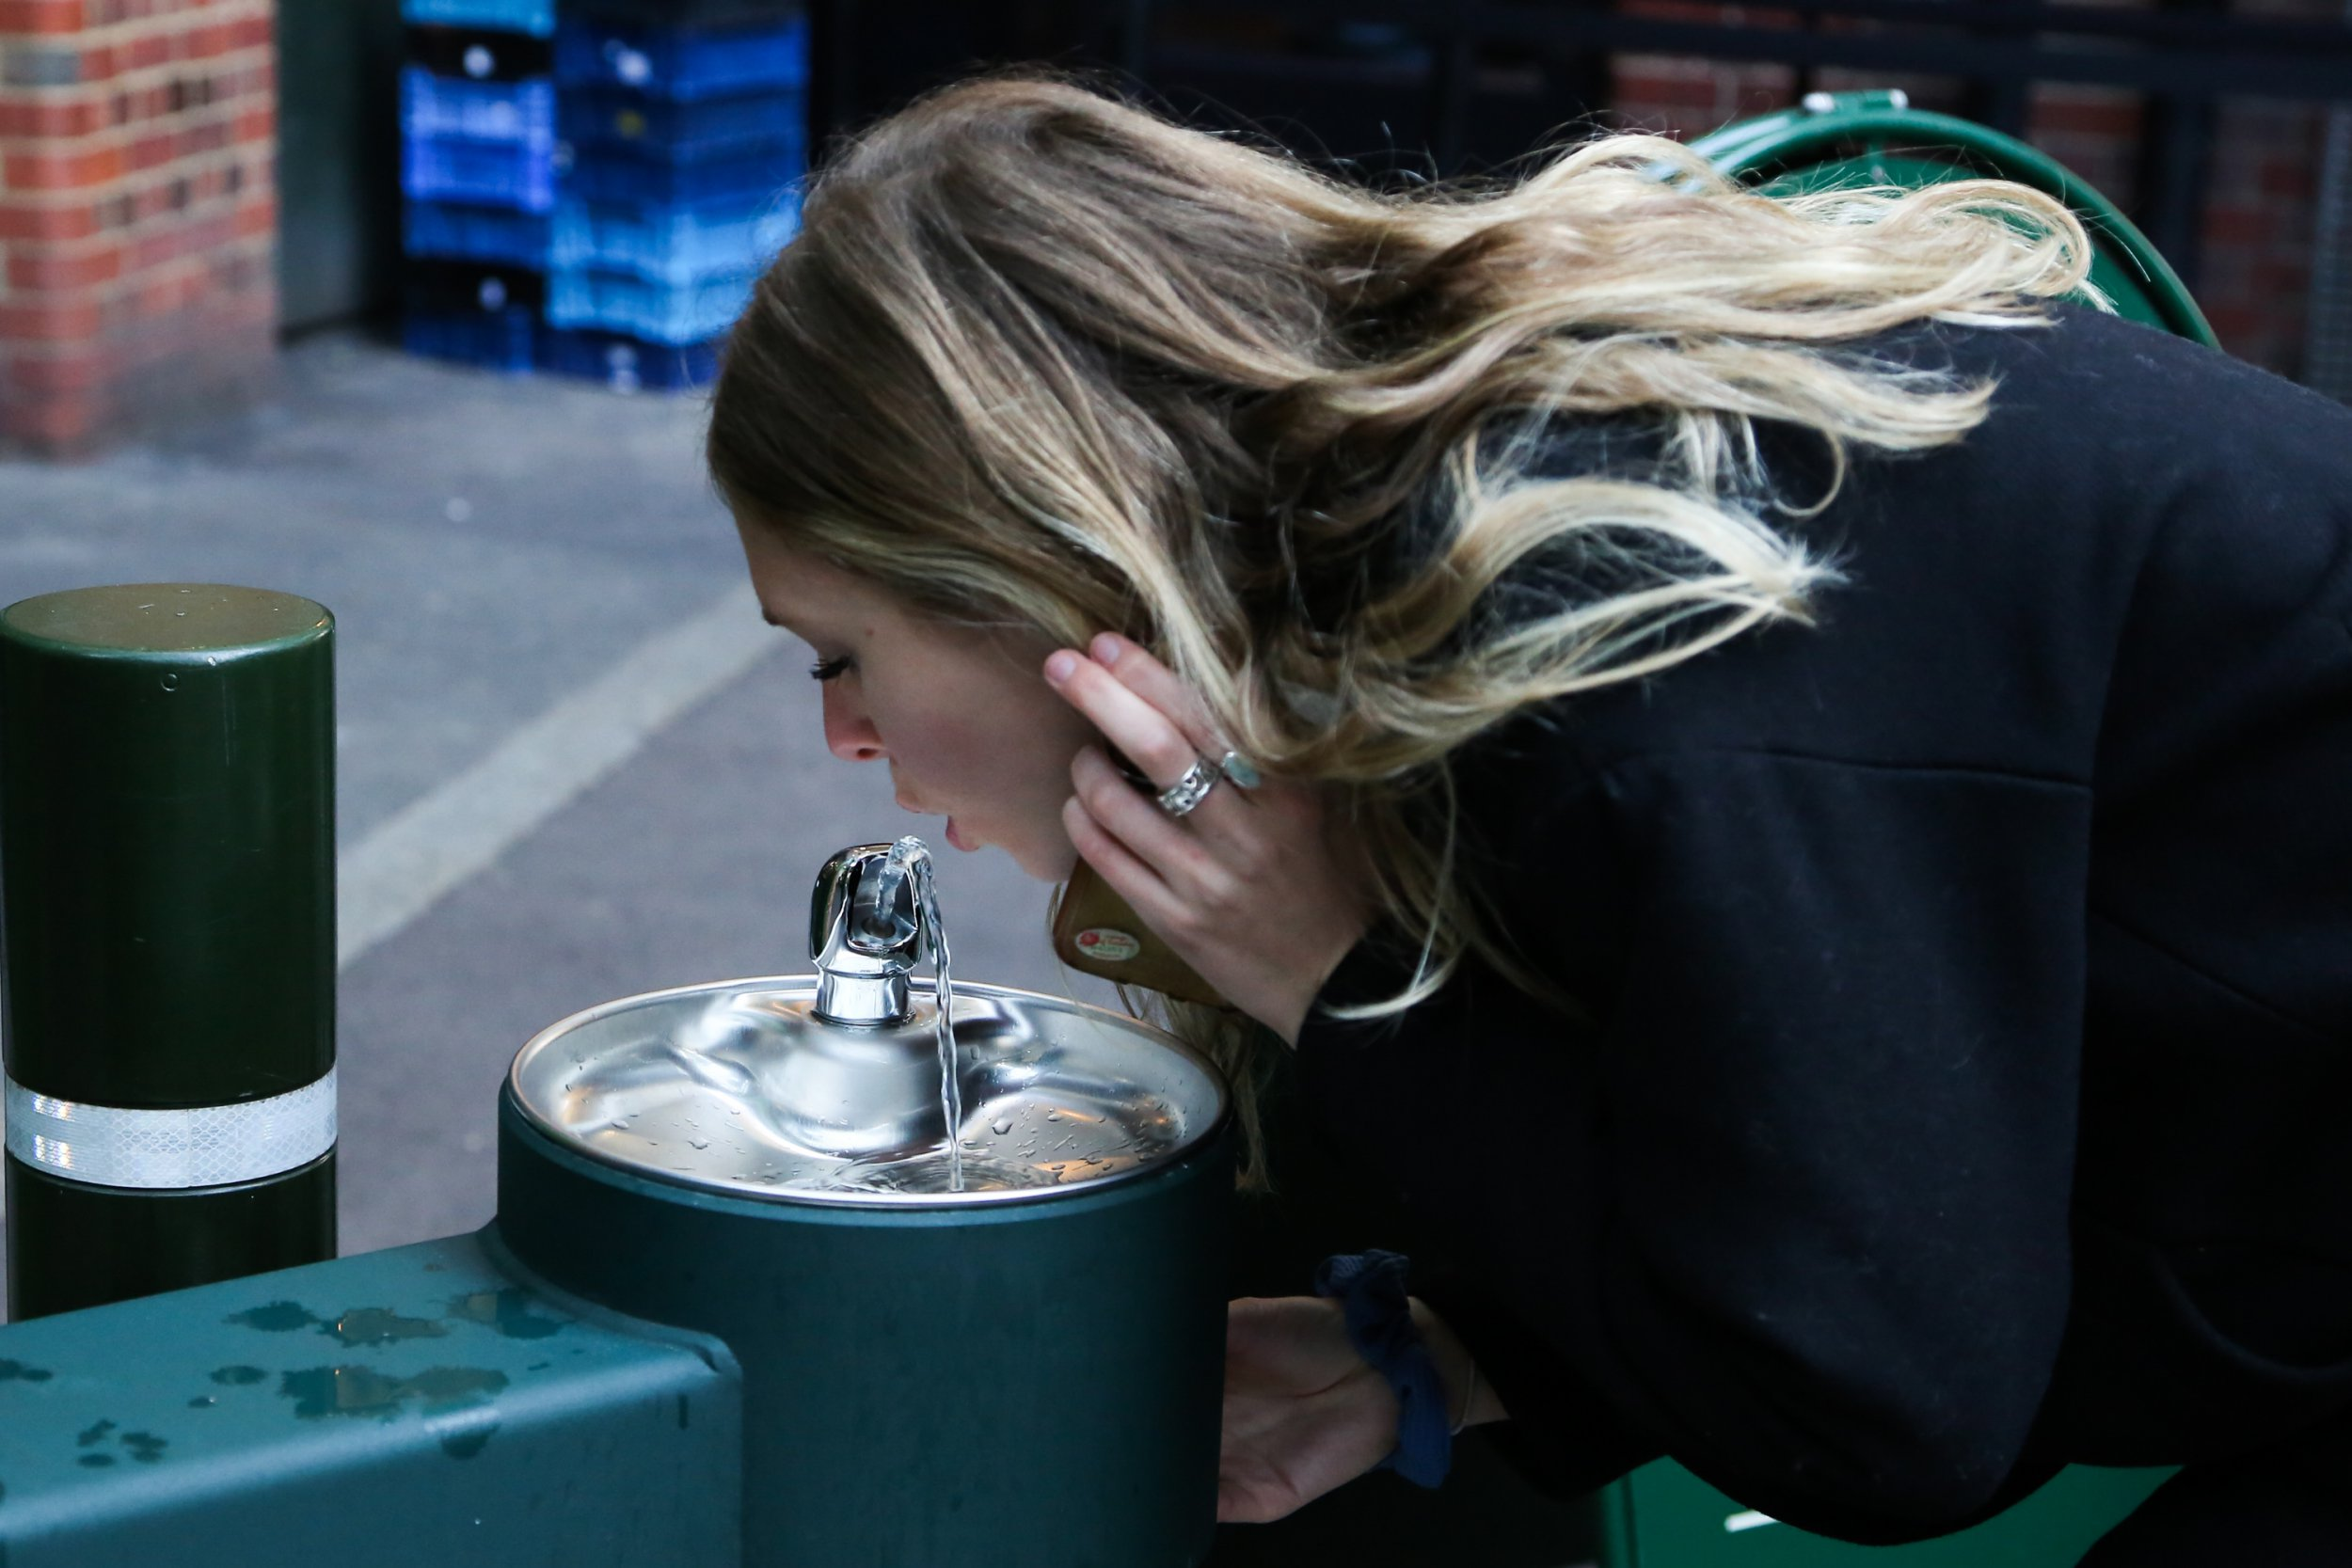 Water fountains in Borough Market. At least 20 new water fountains are to be set up in London, where consumers will be encouraged to refill their water bottles free of charge. The scheme aims to fight the growing scourge of waste created by single-use plastic by preventing the use of tens of millions of plastic bottles every year, as well as increasing the availability of quality drinking water. Featuring: Atmosphere Where: London, United Kingdom When: 26 Jan 2018 Credit: WENN.com